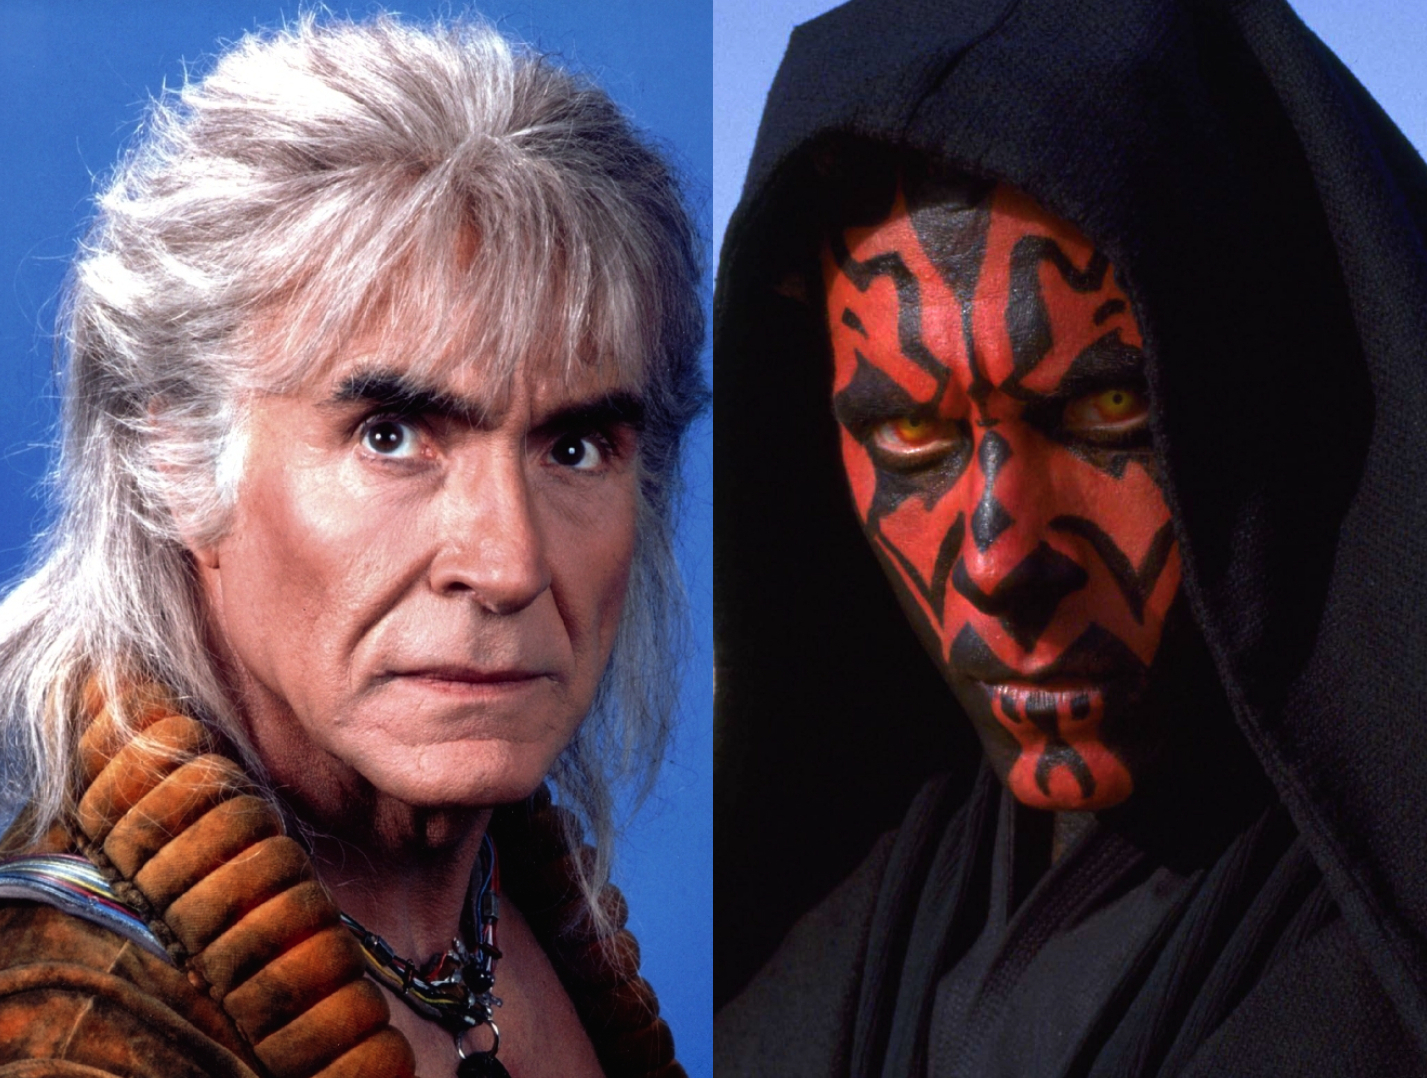 Star Trek II: The Wrath of Khan; Star Wars Episode I: The Phantom Menace Darth Maul